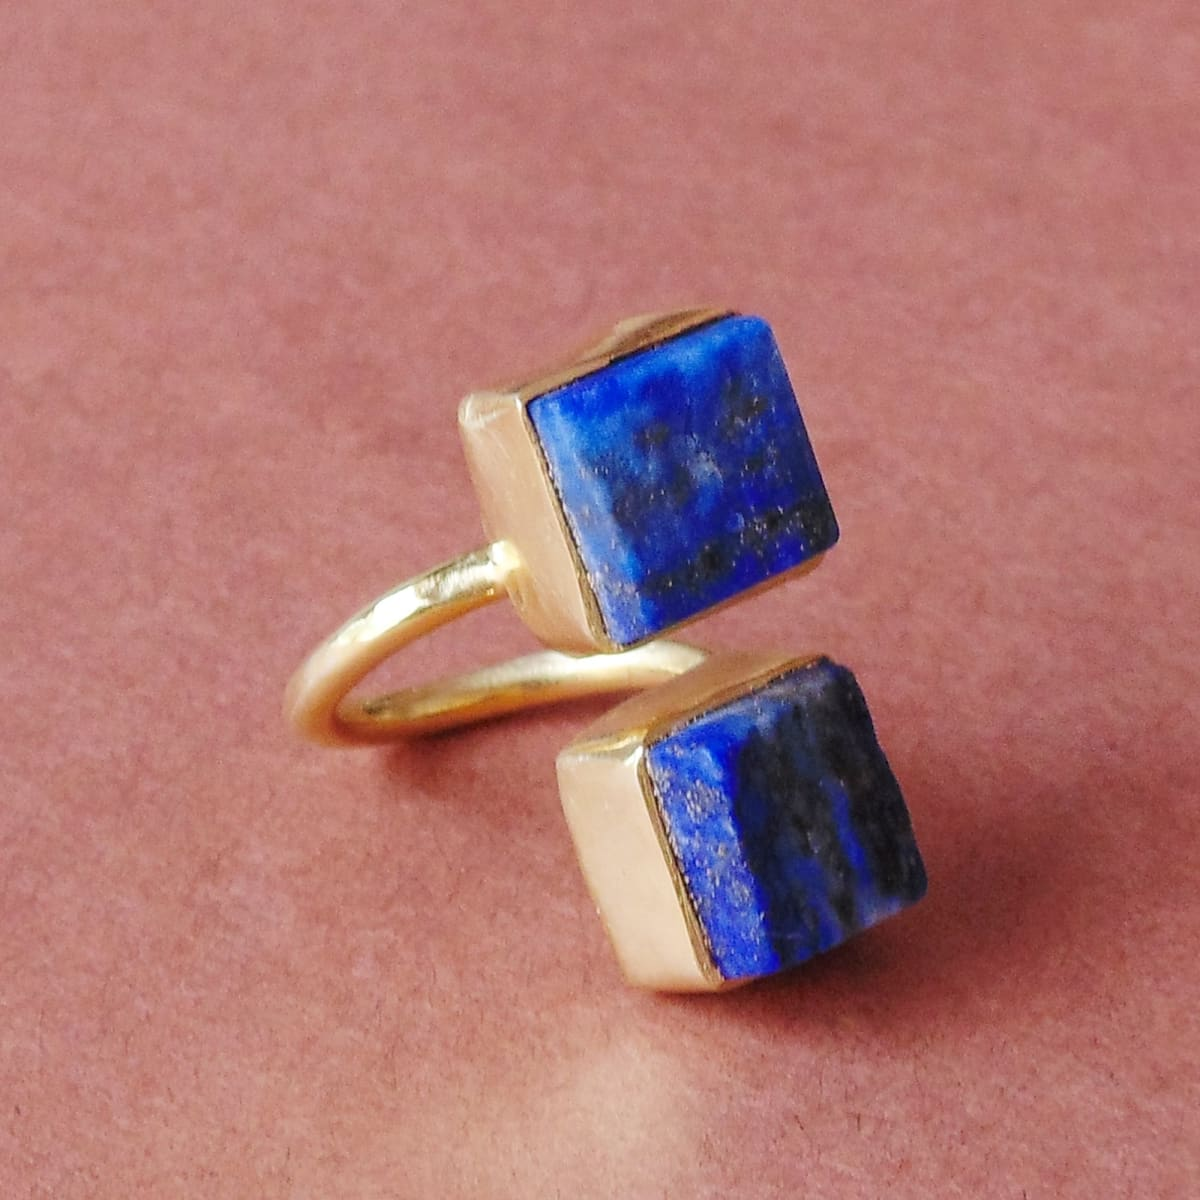 Natural Blue Lapis Lazuli September Birthstone Gold Plated Bypass Ring - by Bhagat Jewels